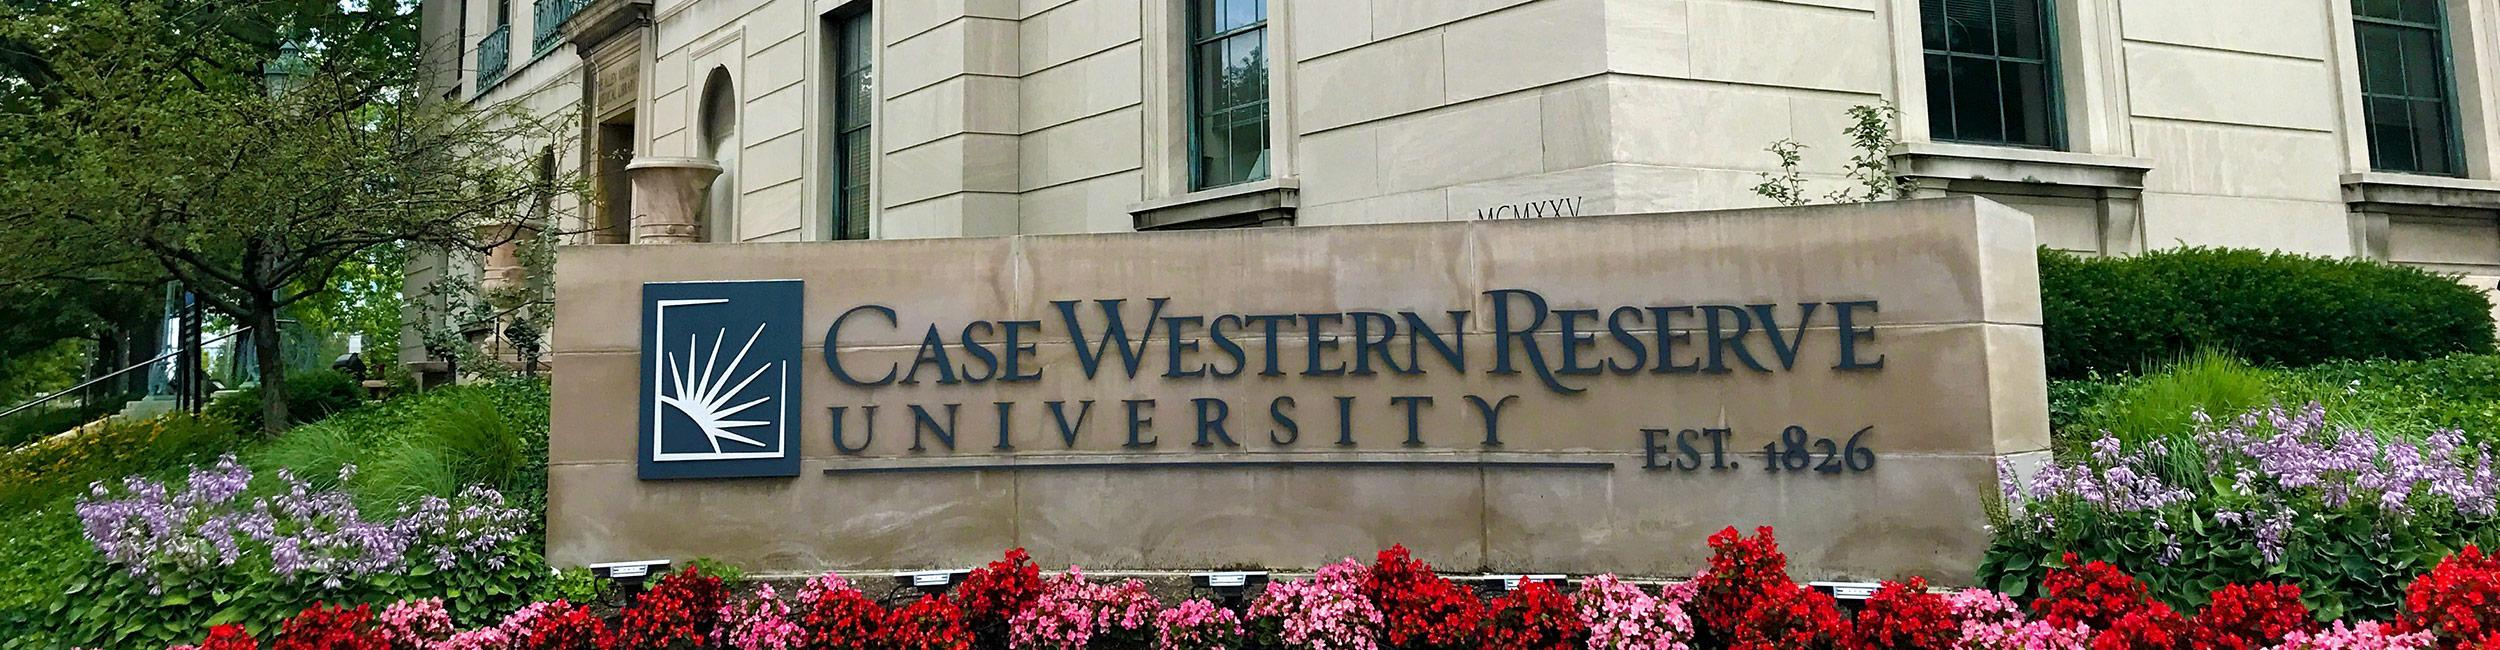 CWRU sign surrounded by flowers